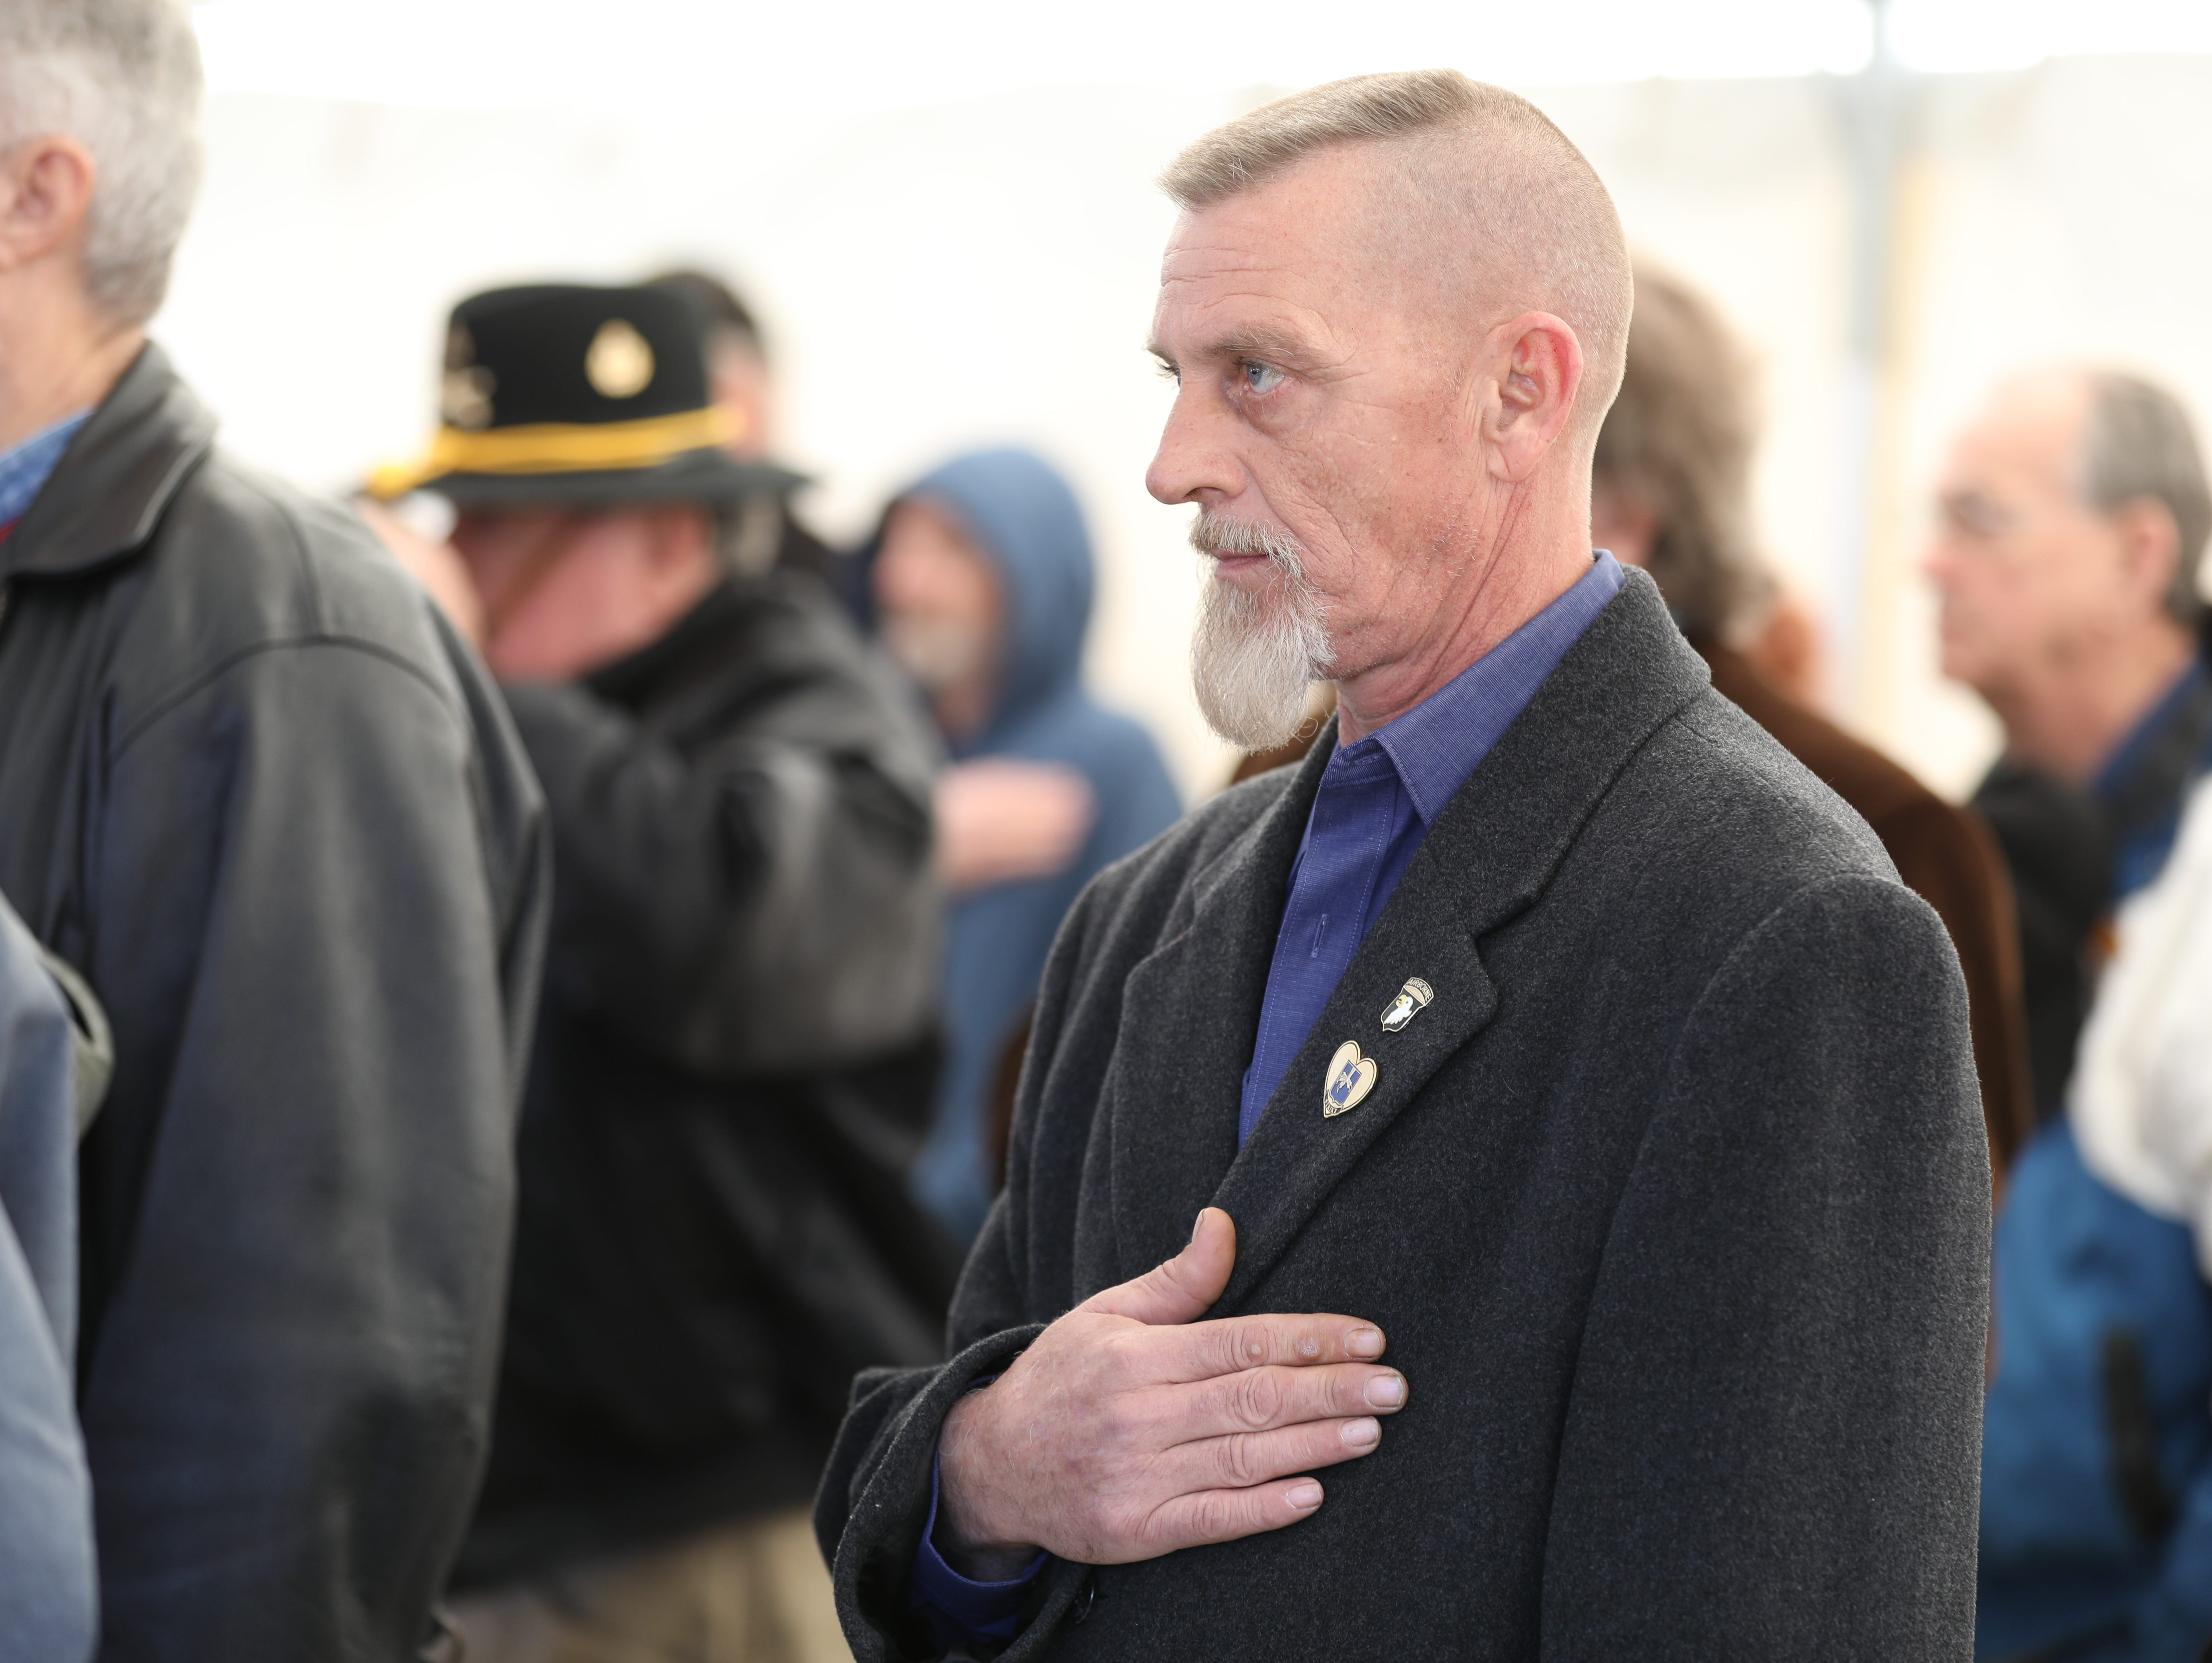 Steve Hamilton, veteran of 3-502nd, pays his respects to the fallen Soldiers at the Gander Memorial in Hopkinsville, KY Dec. 12, 2018.